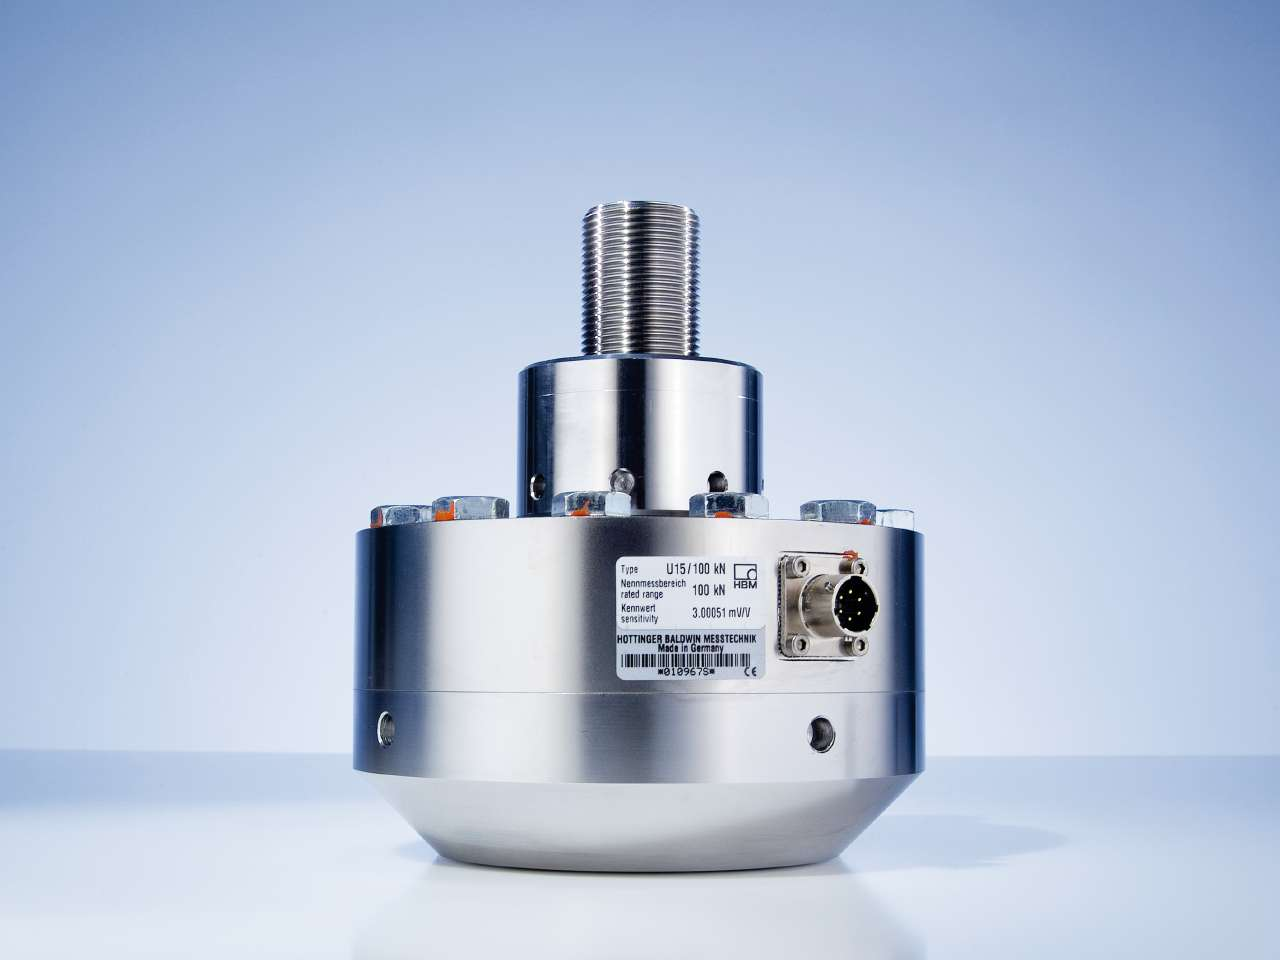 U15 high-precision force transducer from HBM